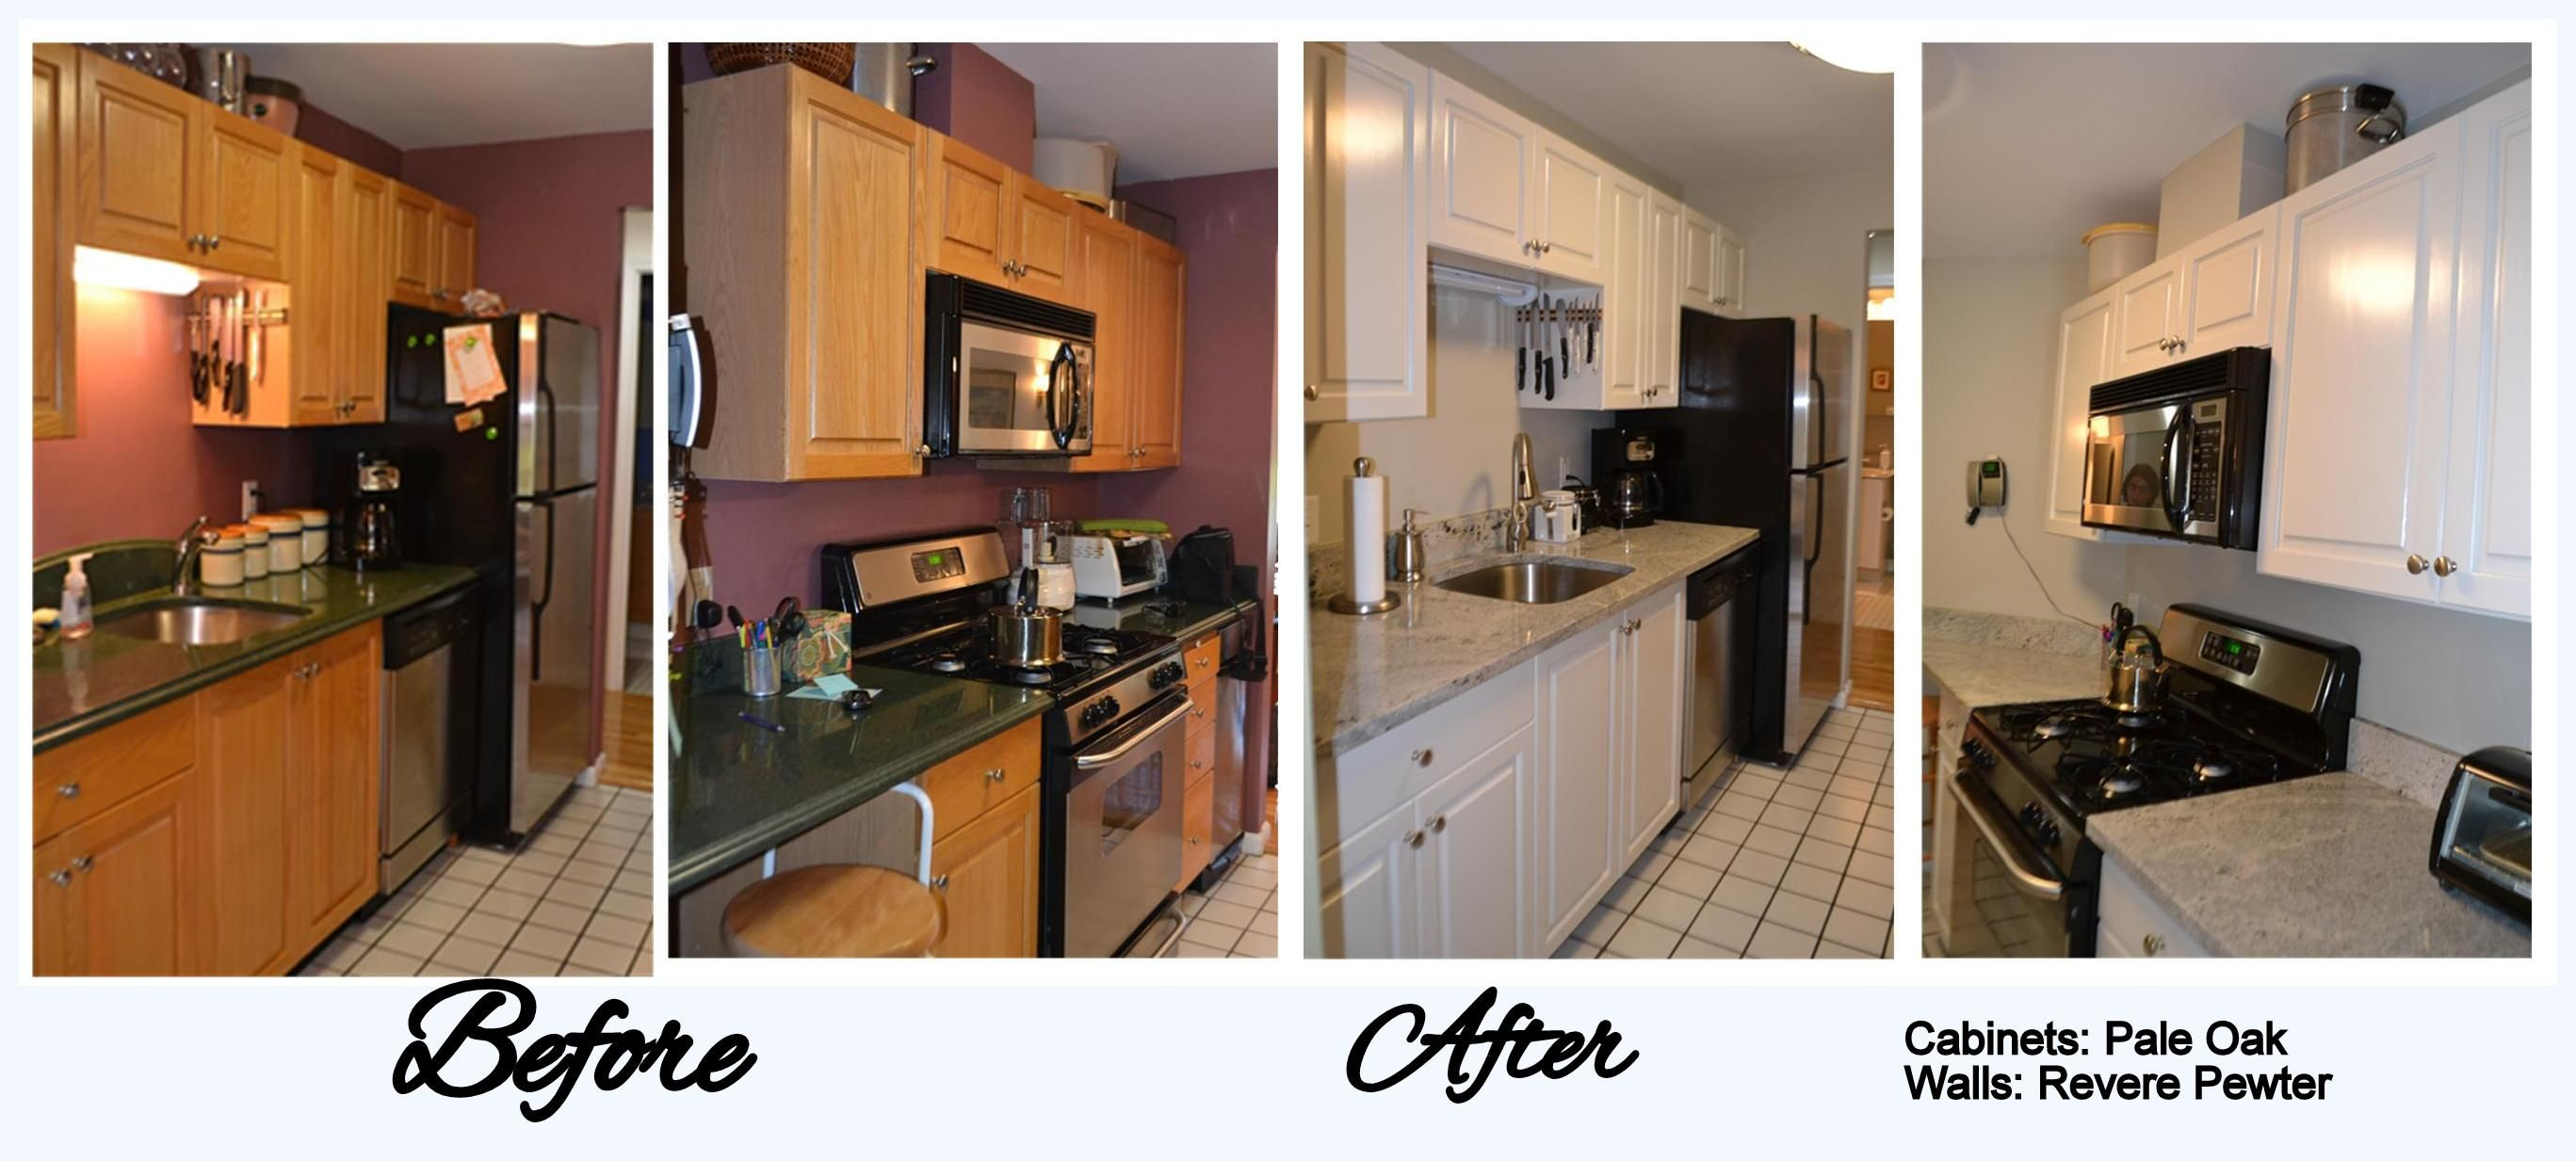 kitchen cabinet refacing before and after photos - Google Search ...